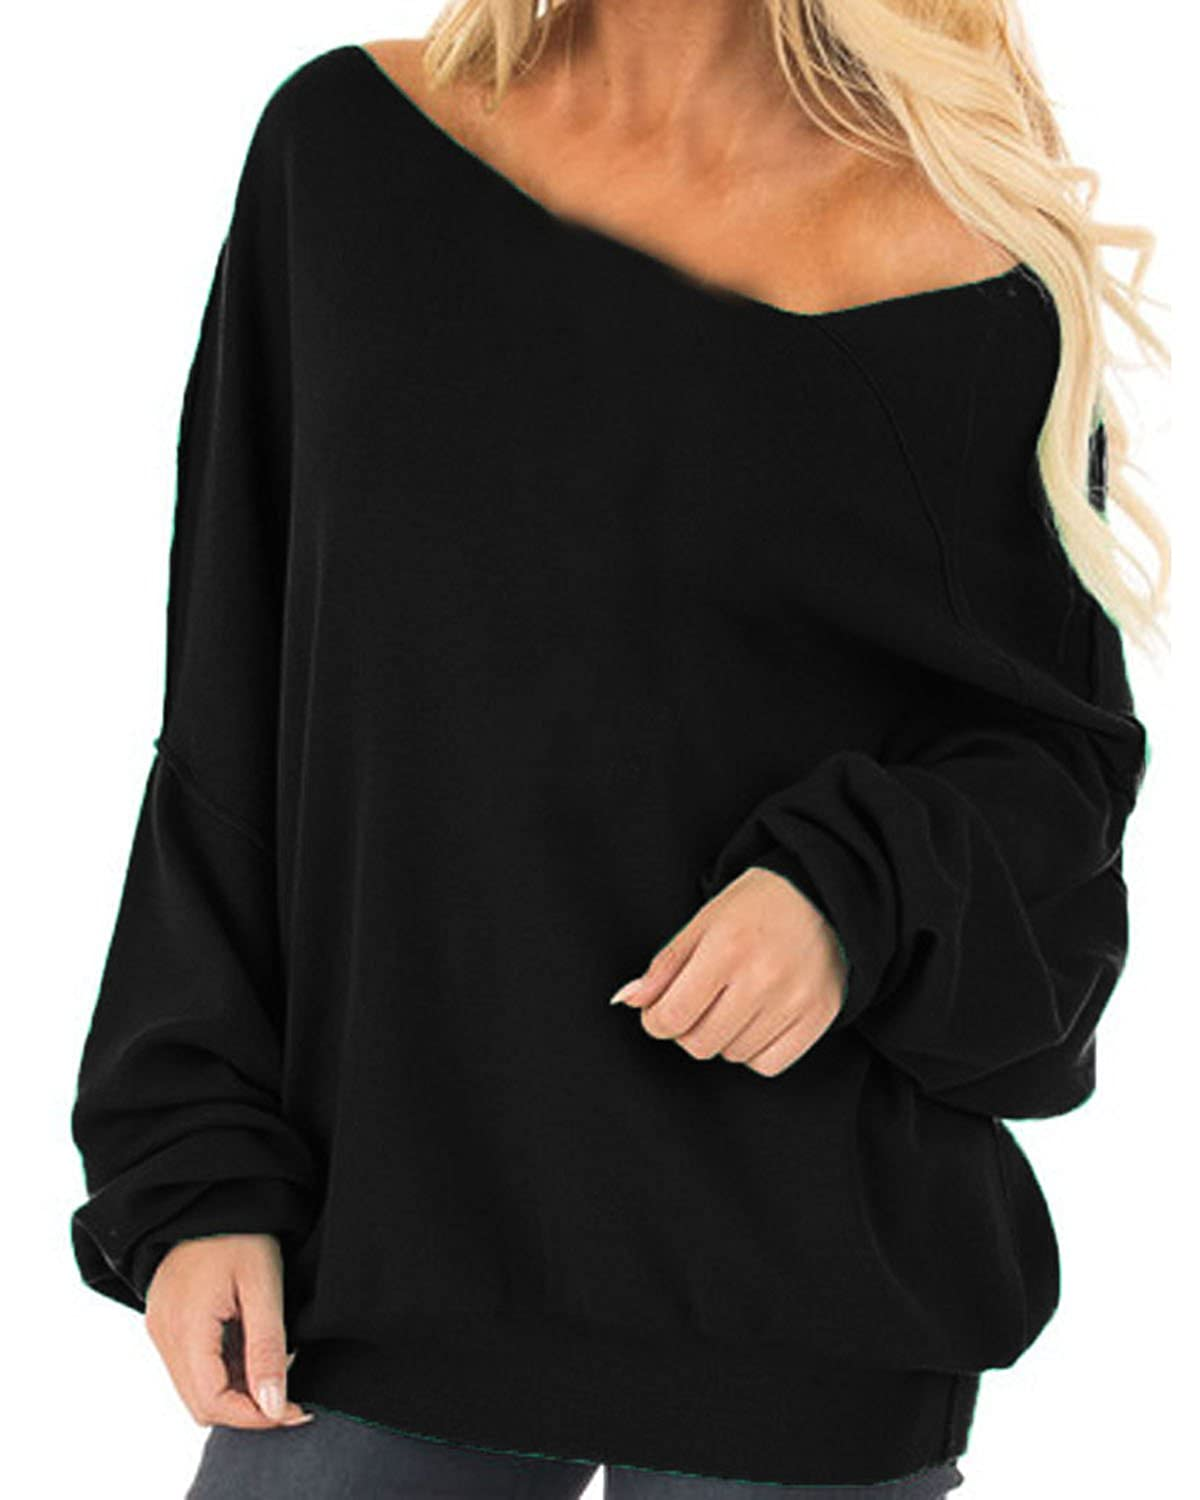 Auxo Womens Off The Shoulder Tops Baggy Shirt Long Sleeve Blouse Oversized  Sweater Jumper Pullover at Amazon Women s Clothing store  e118812eb